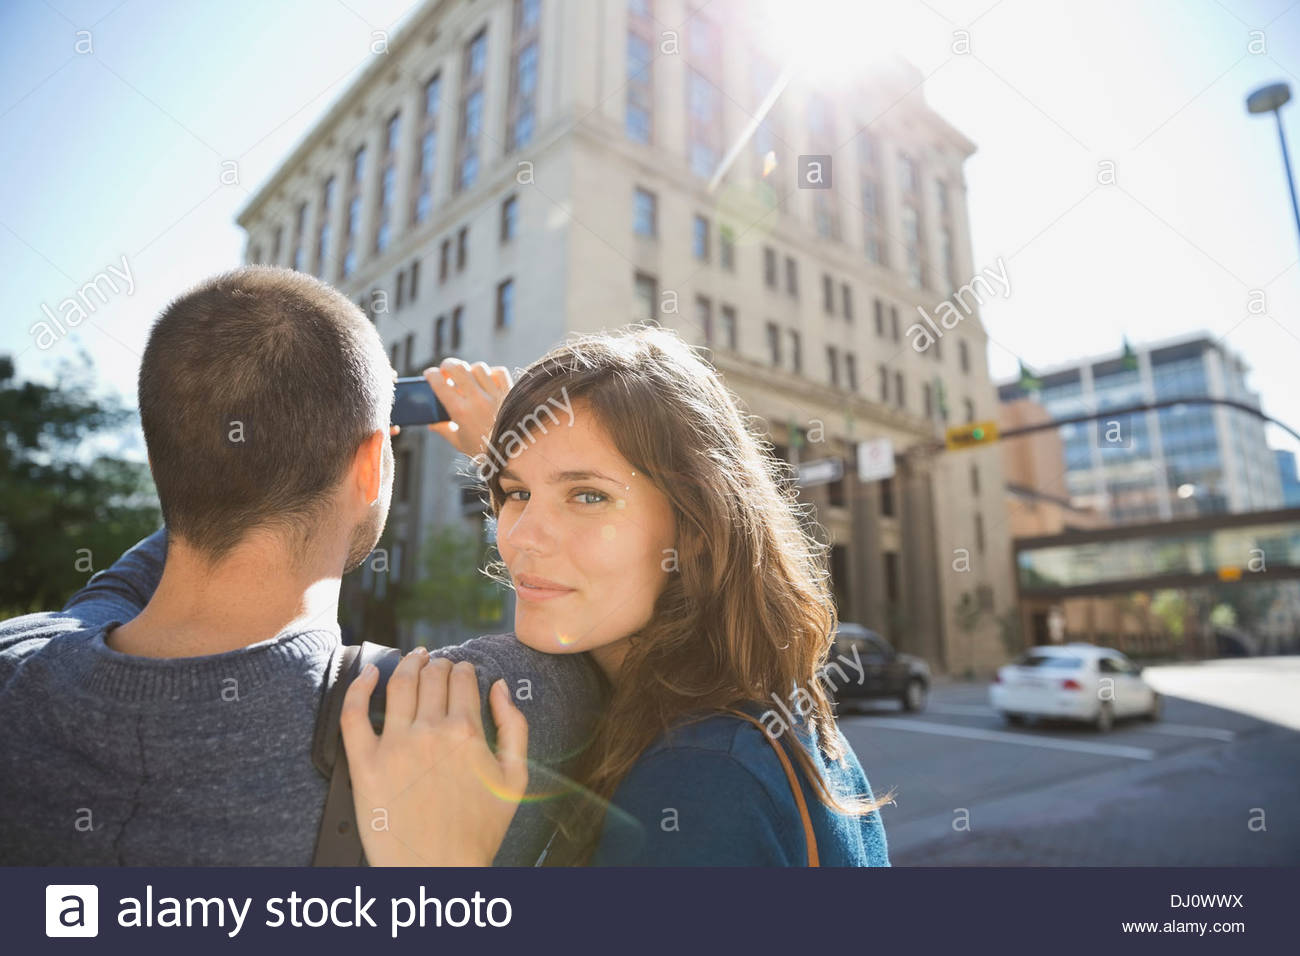 Portrait of woman with man photographing building - Stock Image